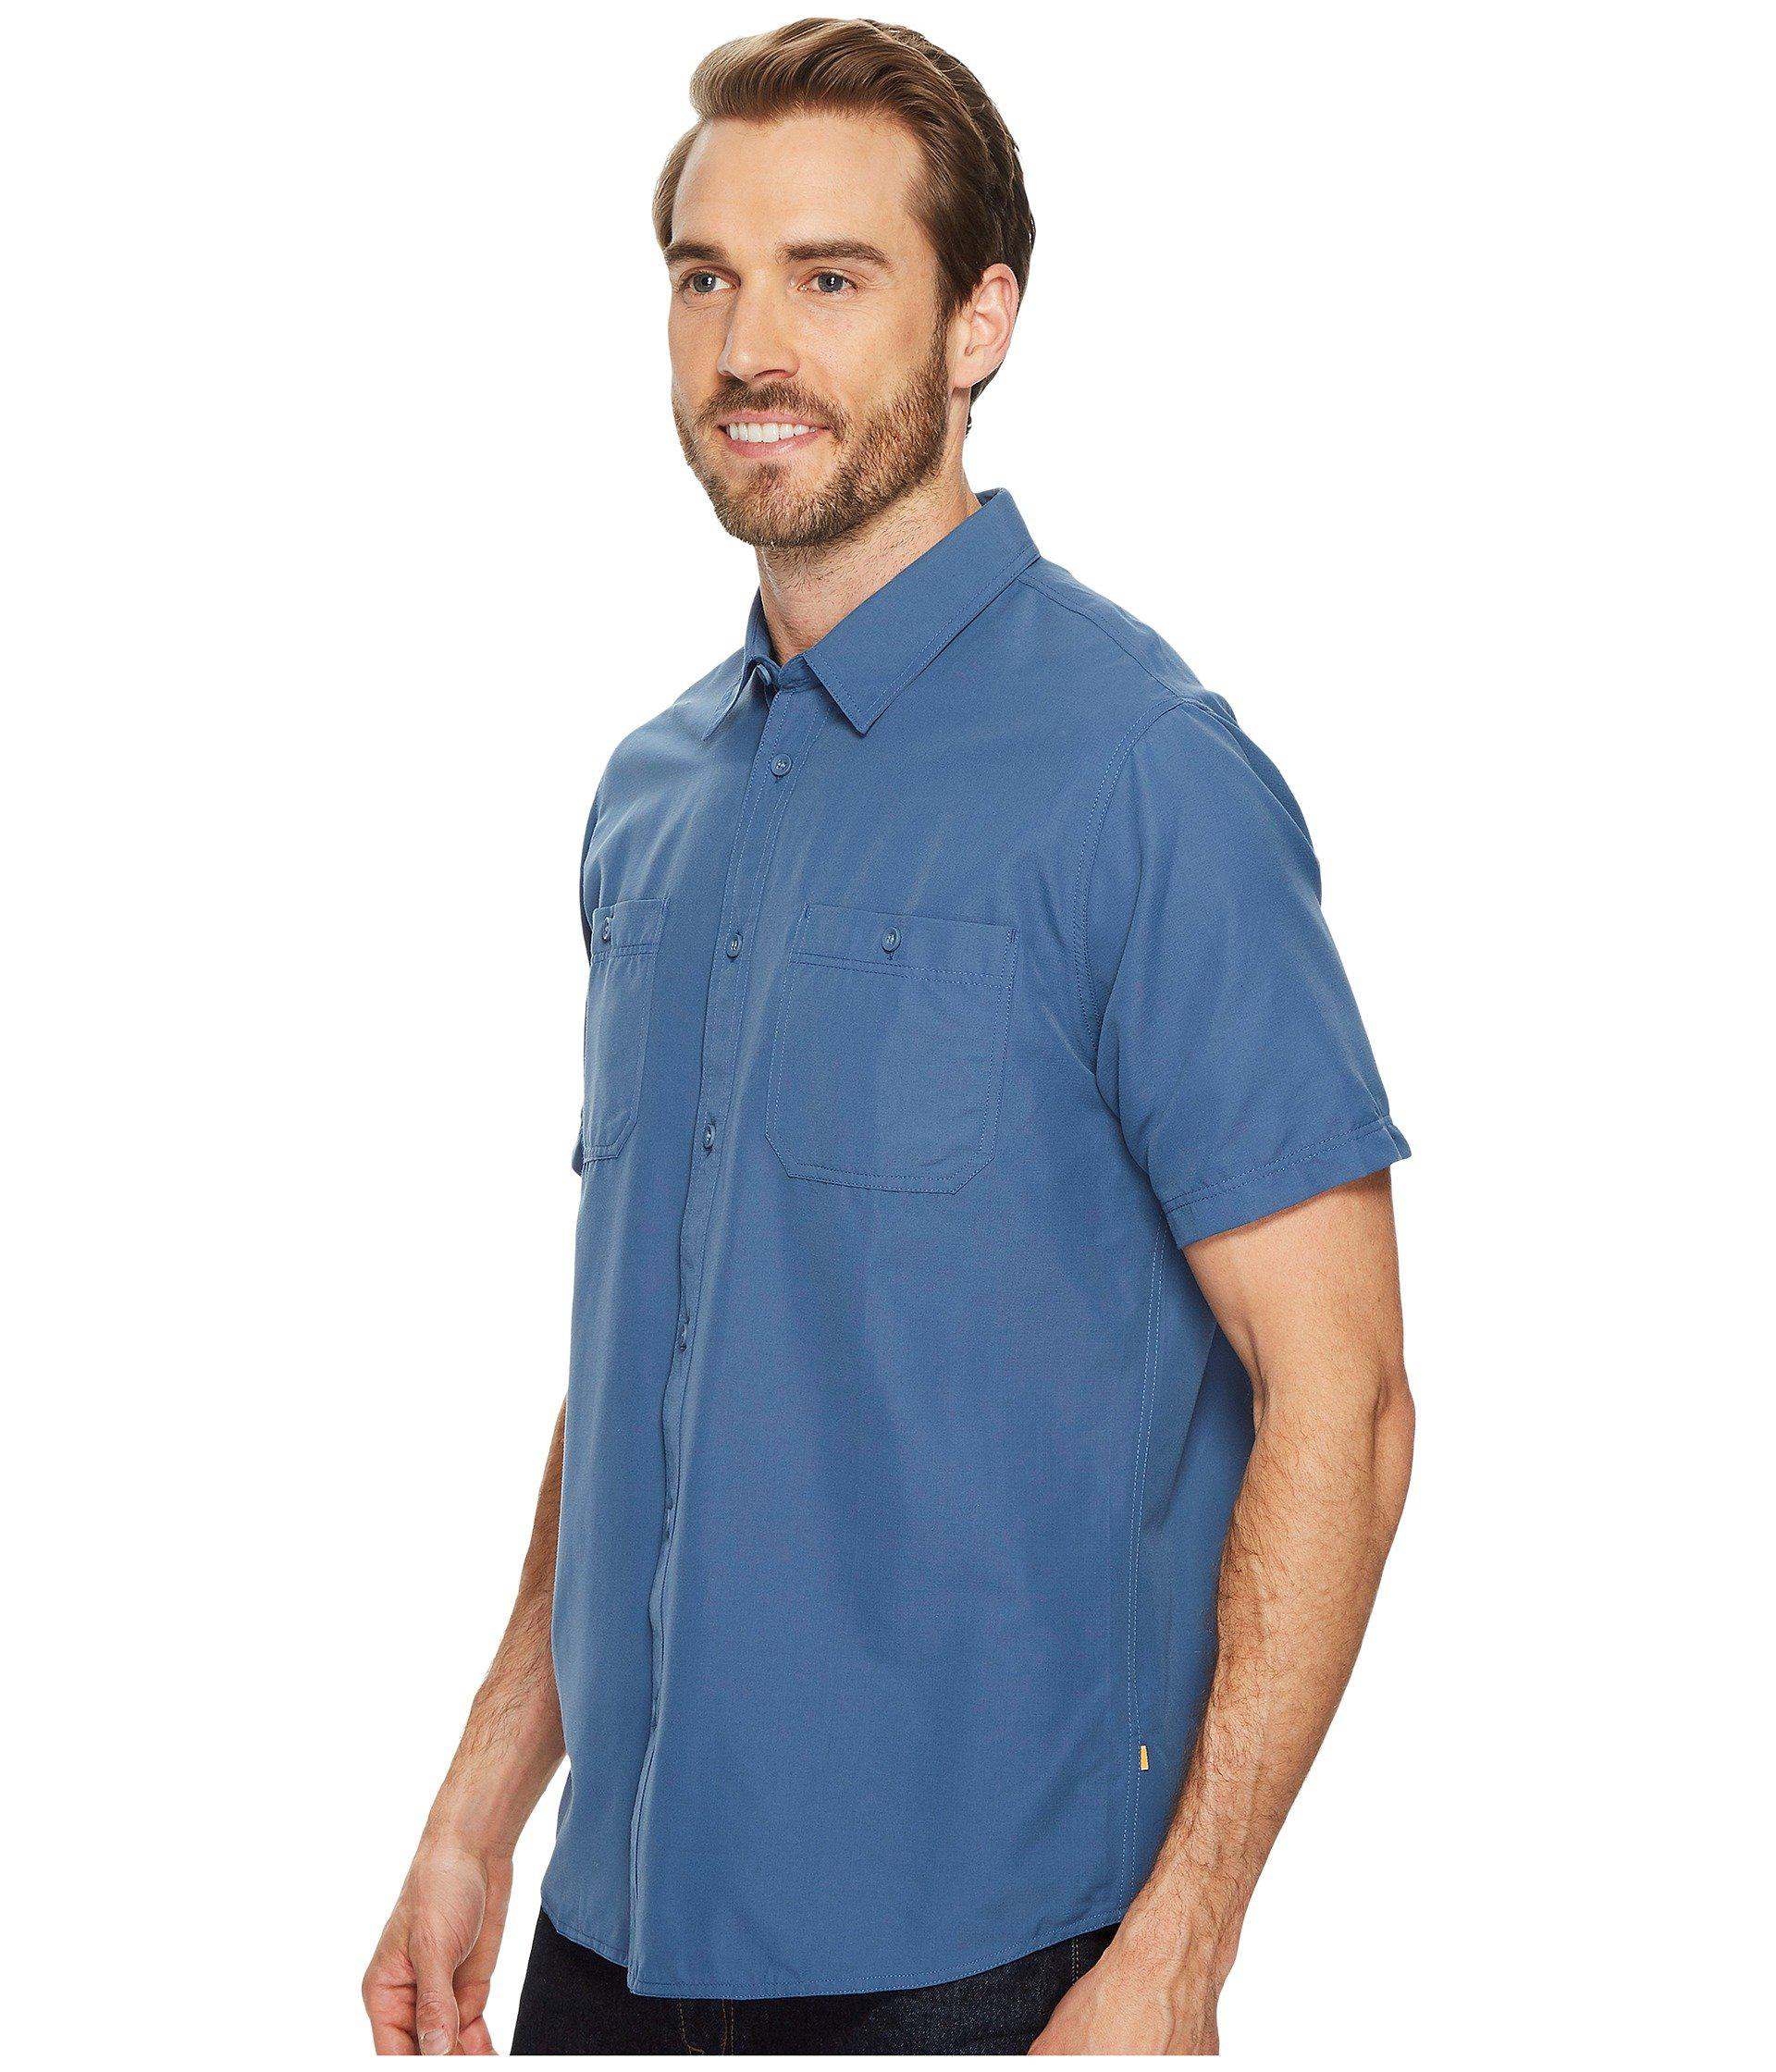 9819d3066c0 Lyst - Quiksilver Wake Solid Short Sleeve Woven Shirt in Blue for Men